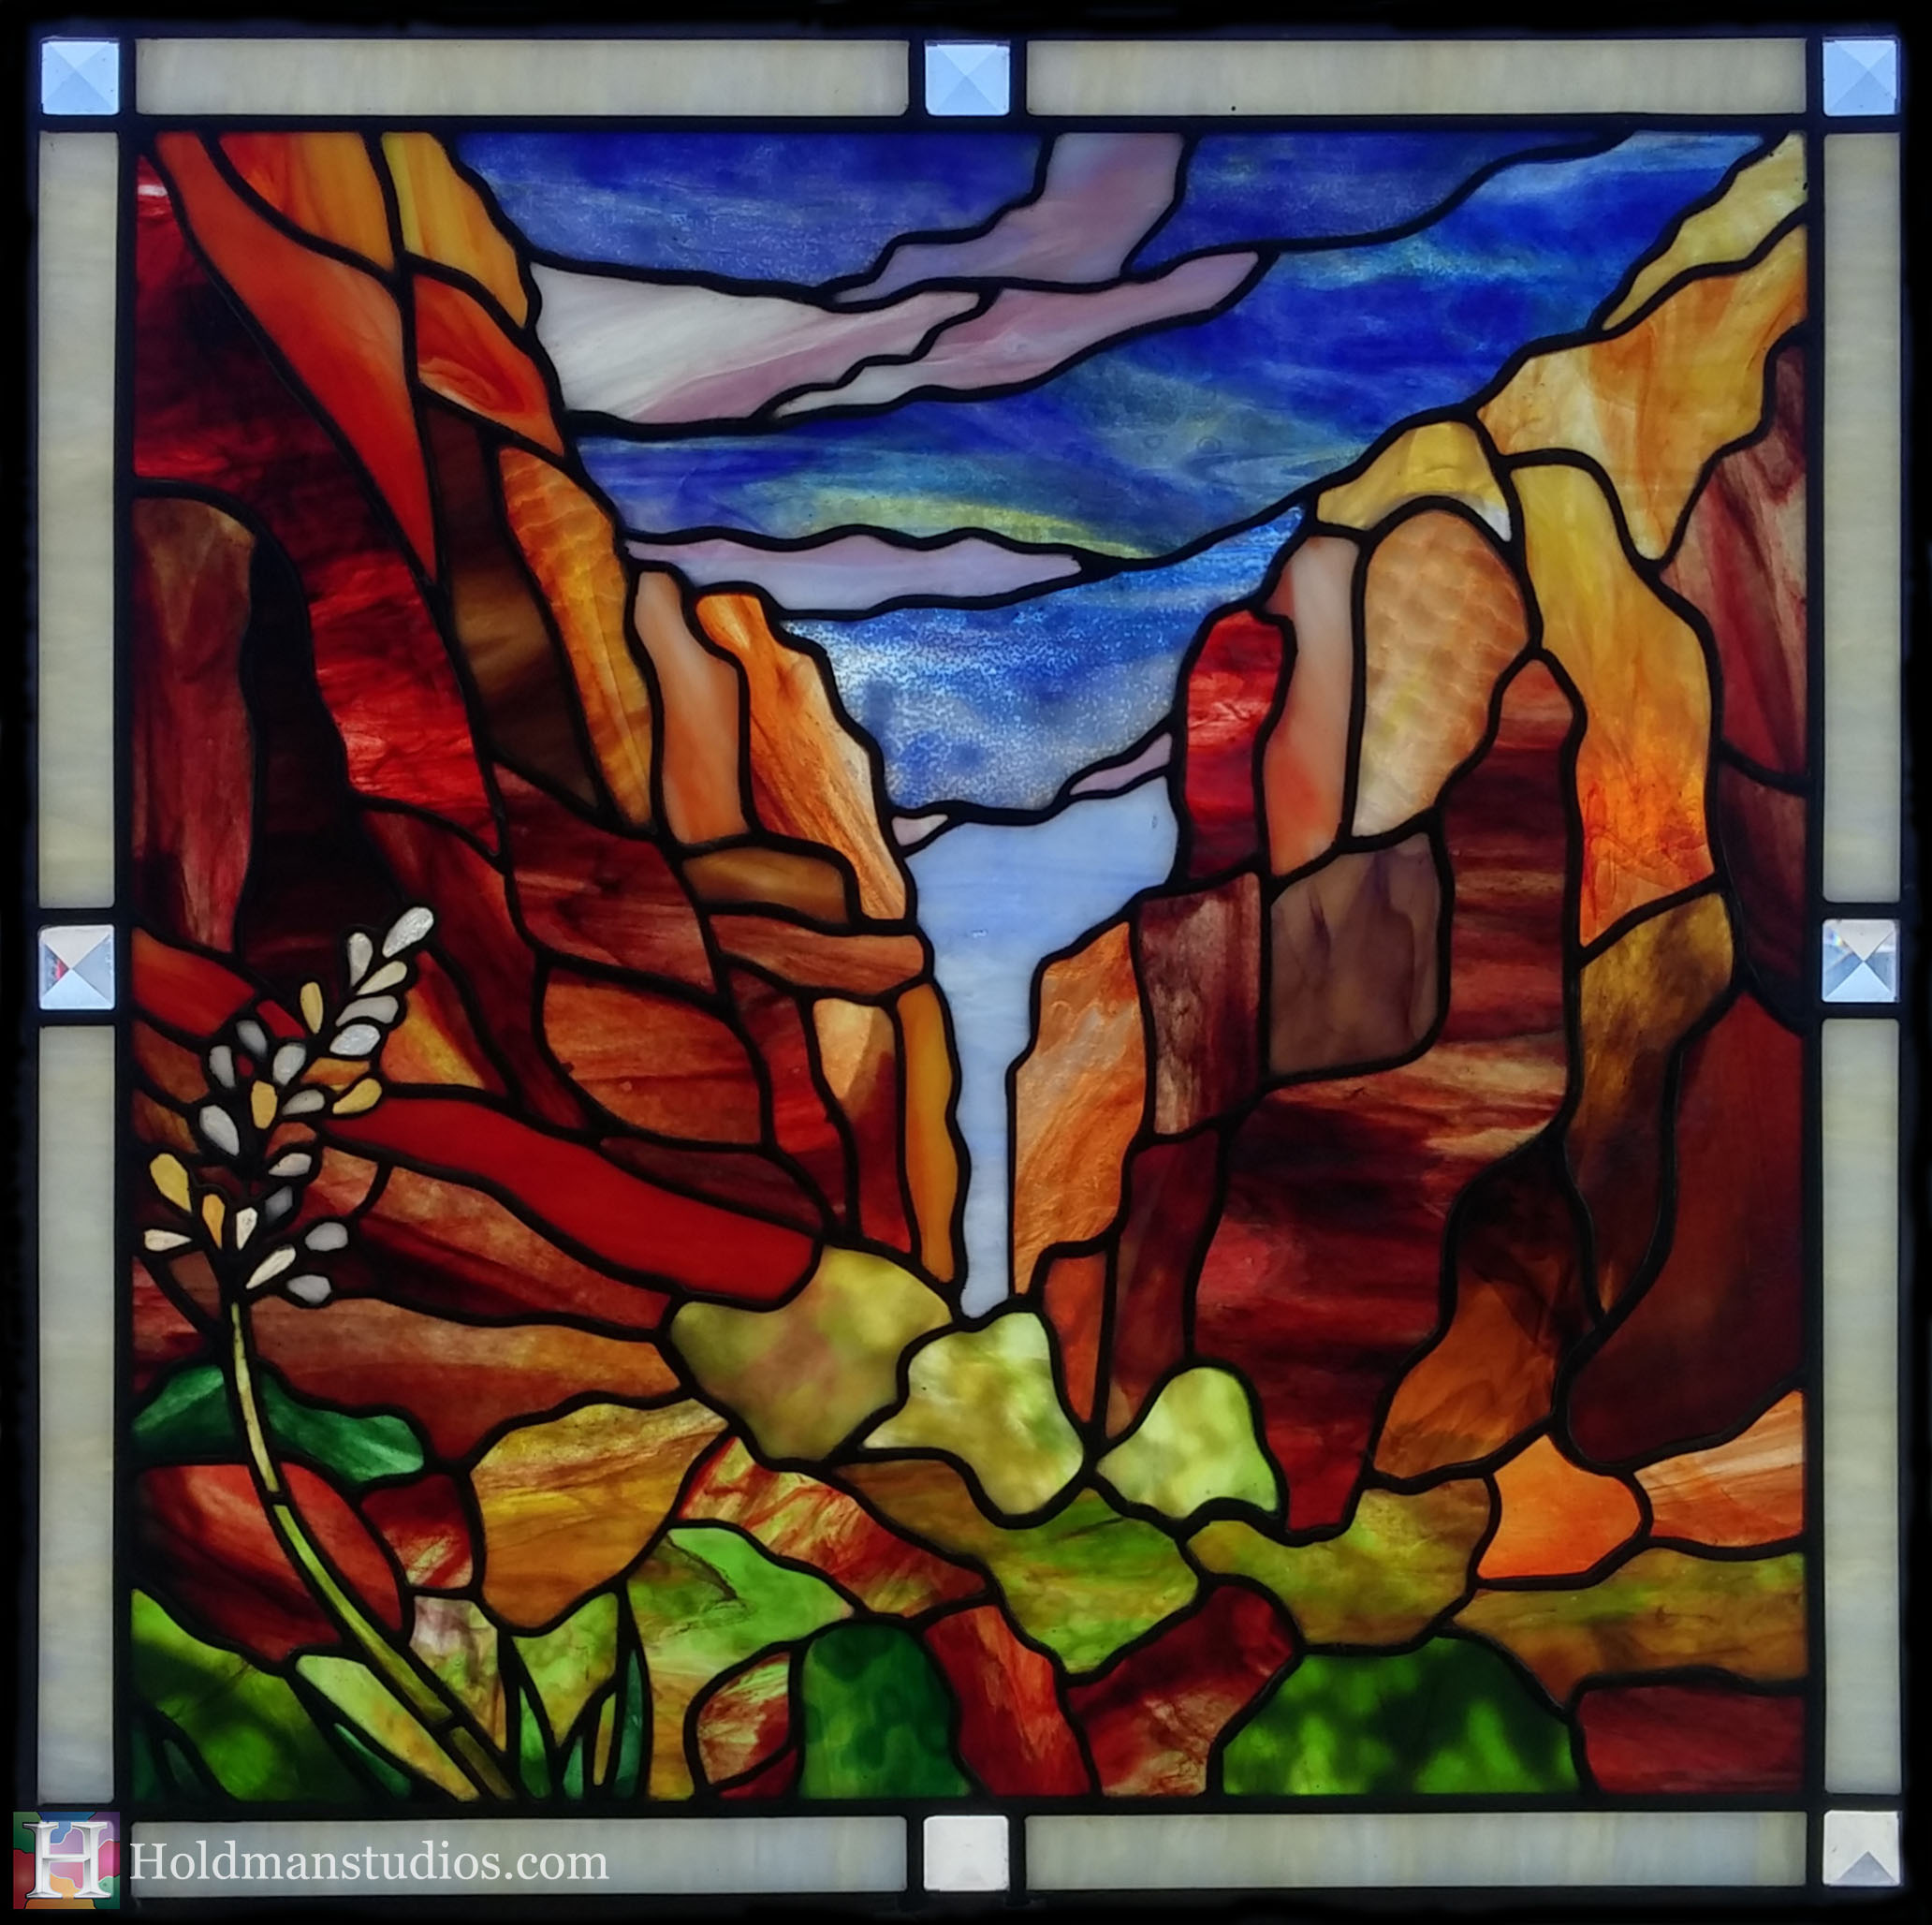 Holdman-Studios-Stained-Glass-Window-Southern-Utah-Mountians-Trees-Sky-Clounds-Agave-Plant-Flower.jpg